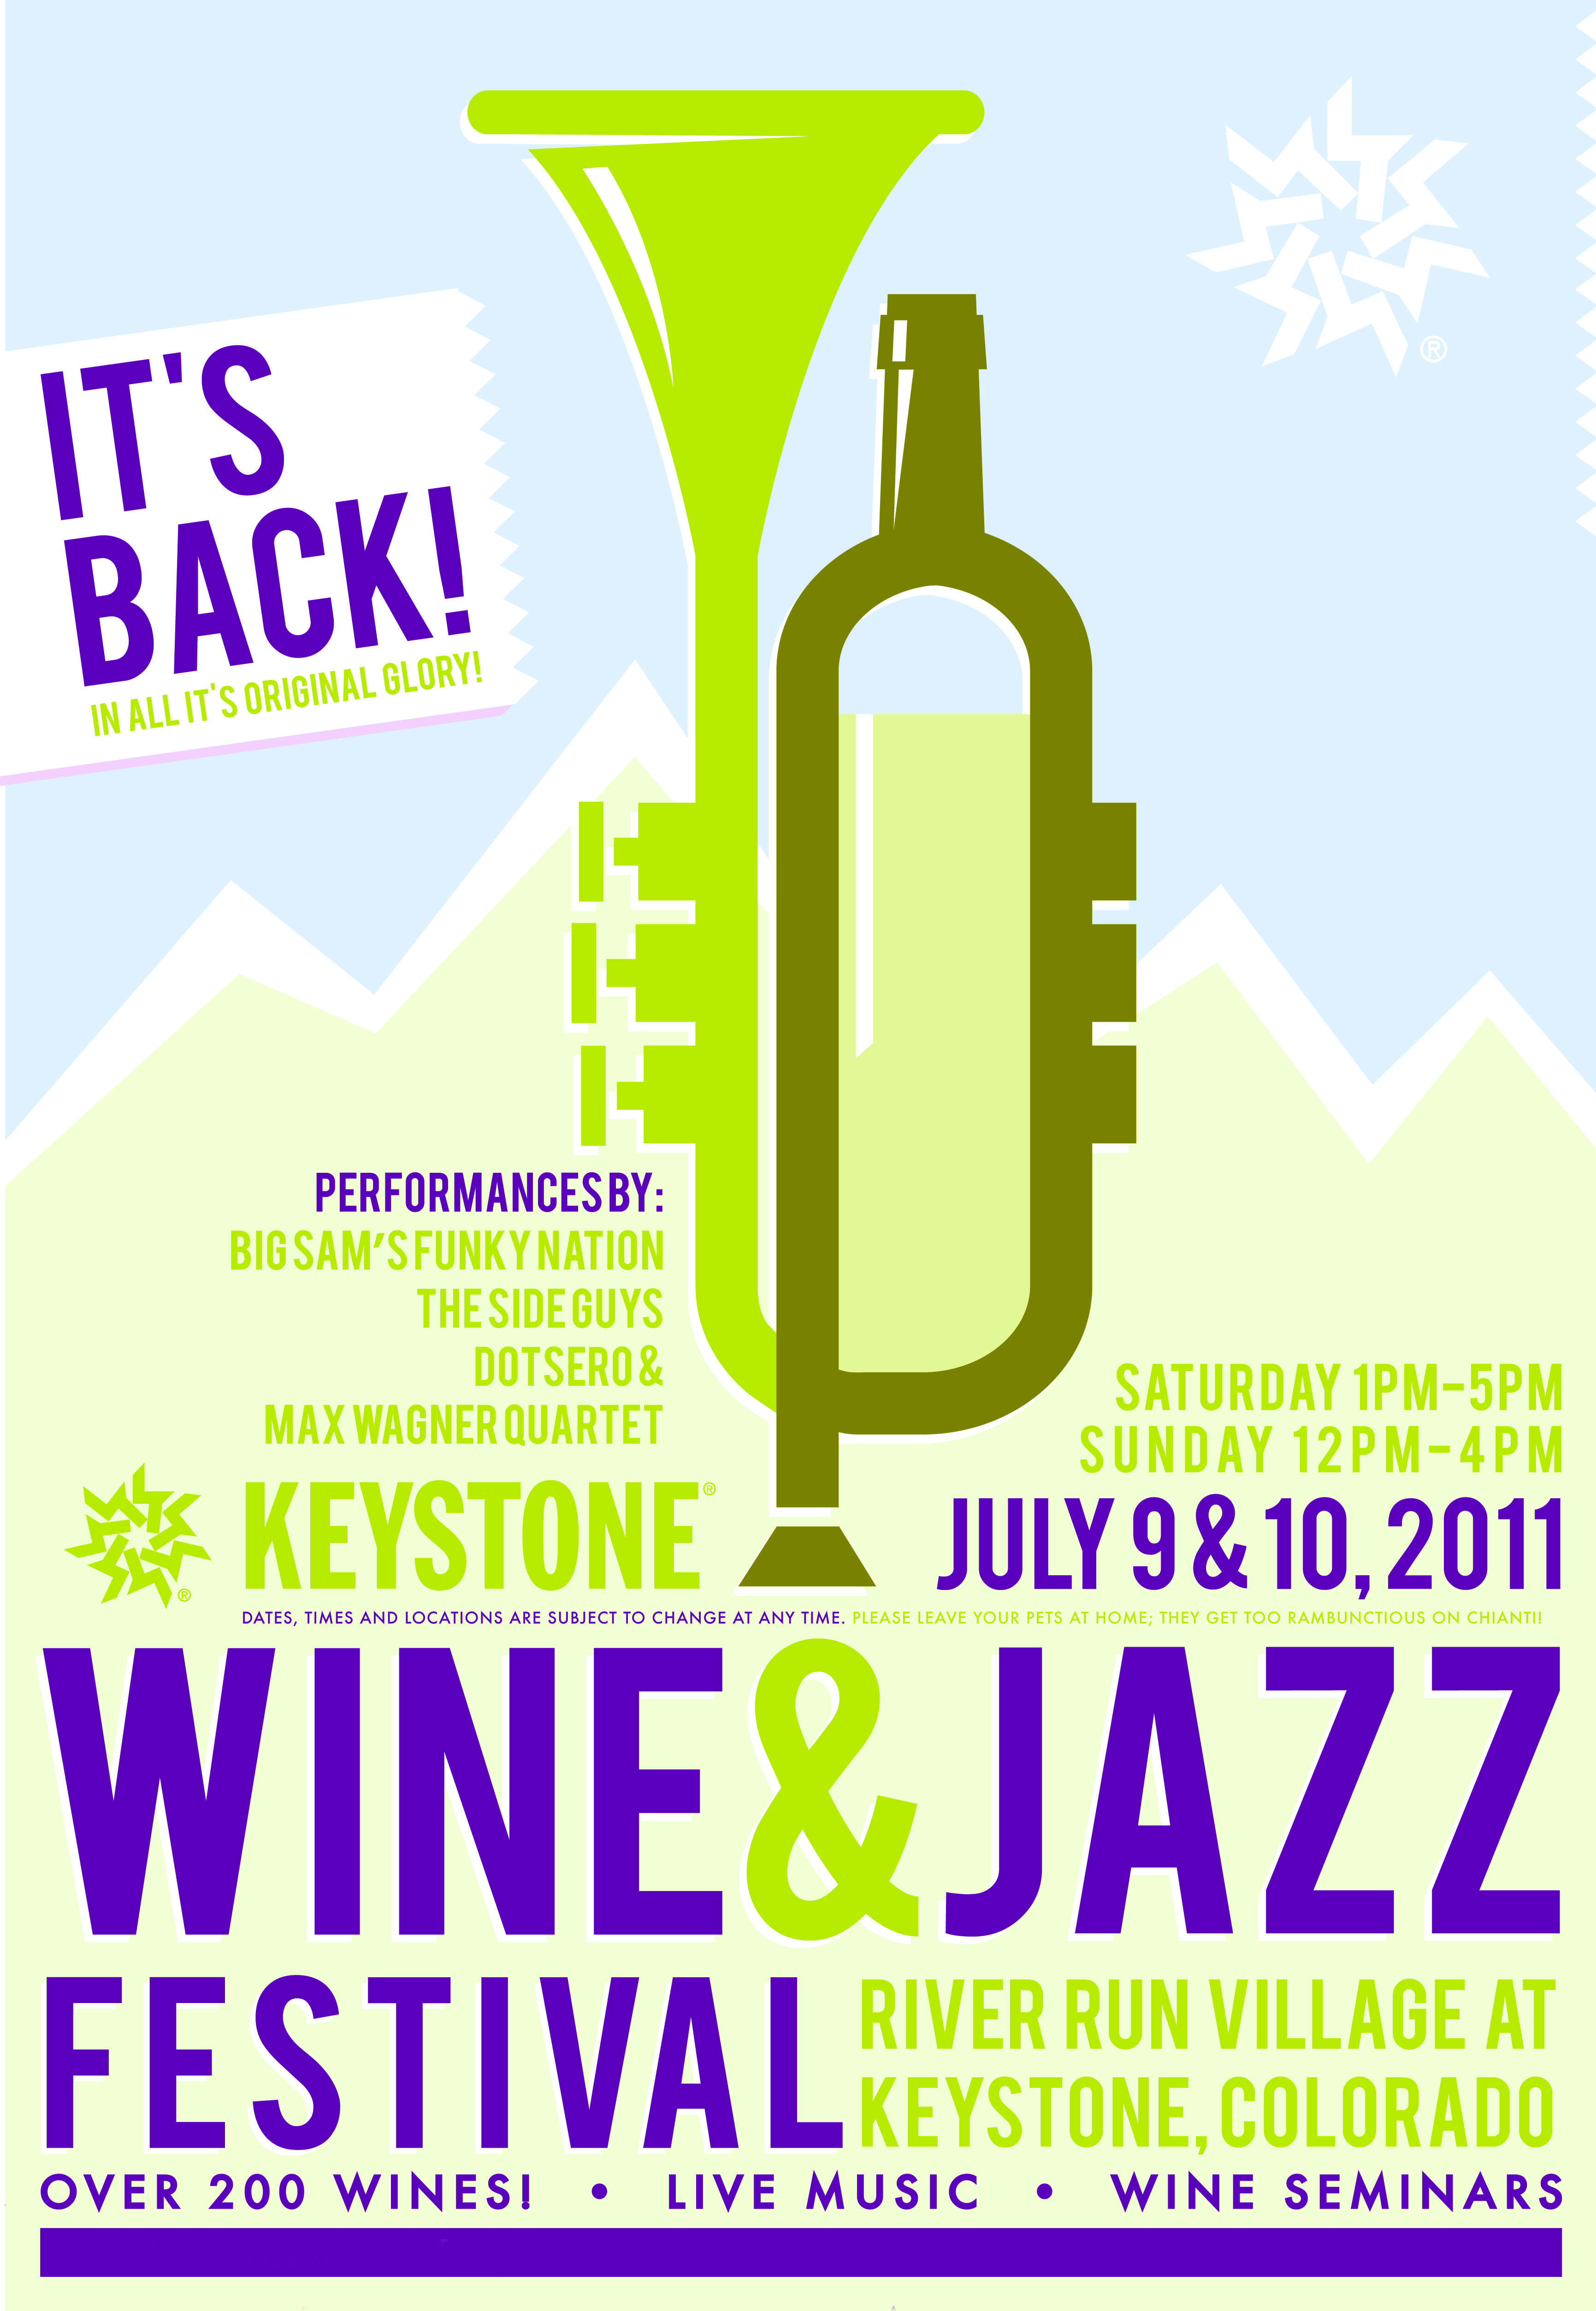 Wine Jazz Festival Is Back This Weekend Keystone Vacation Rentals By Summitcove Property Management Tematica